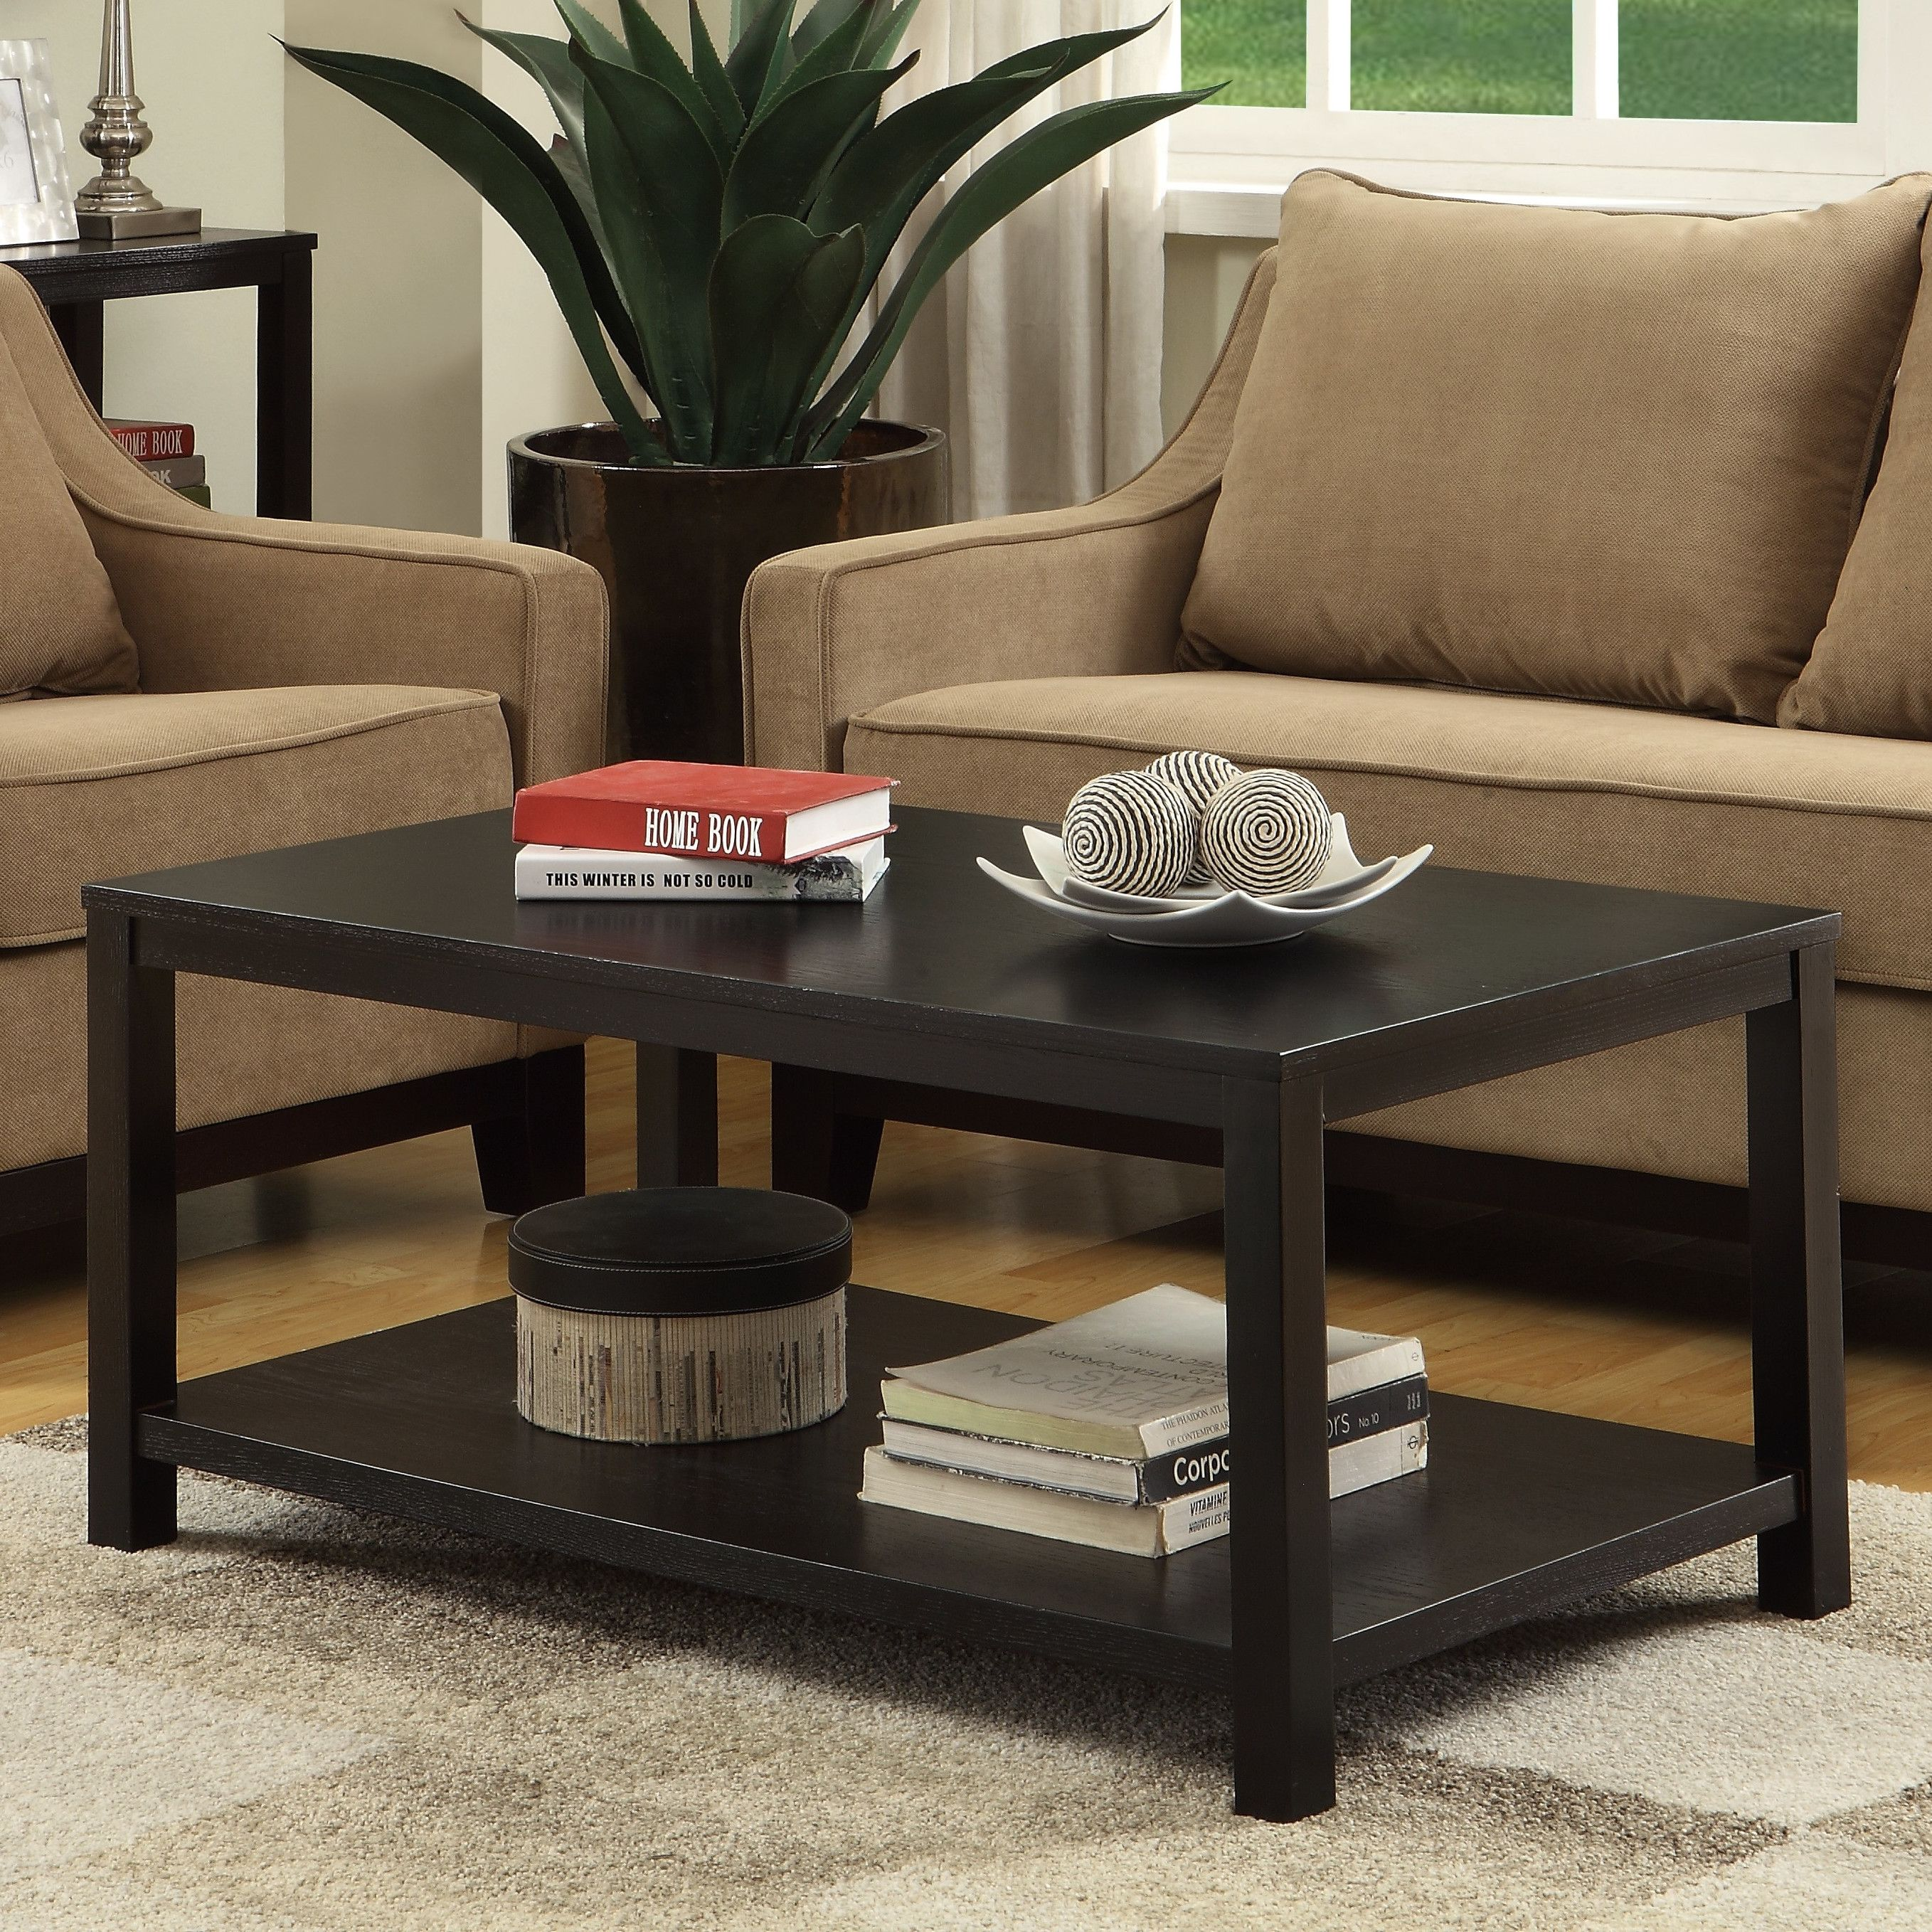 Crown heights solid wood coffee table with storage in 2020